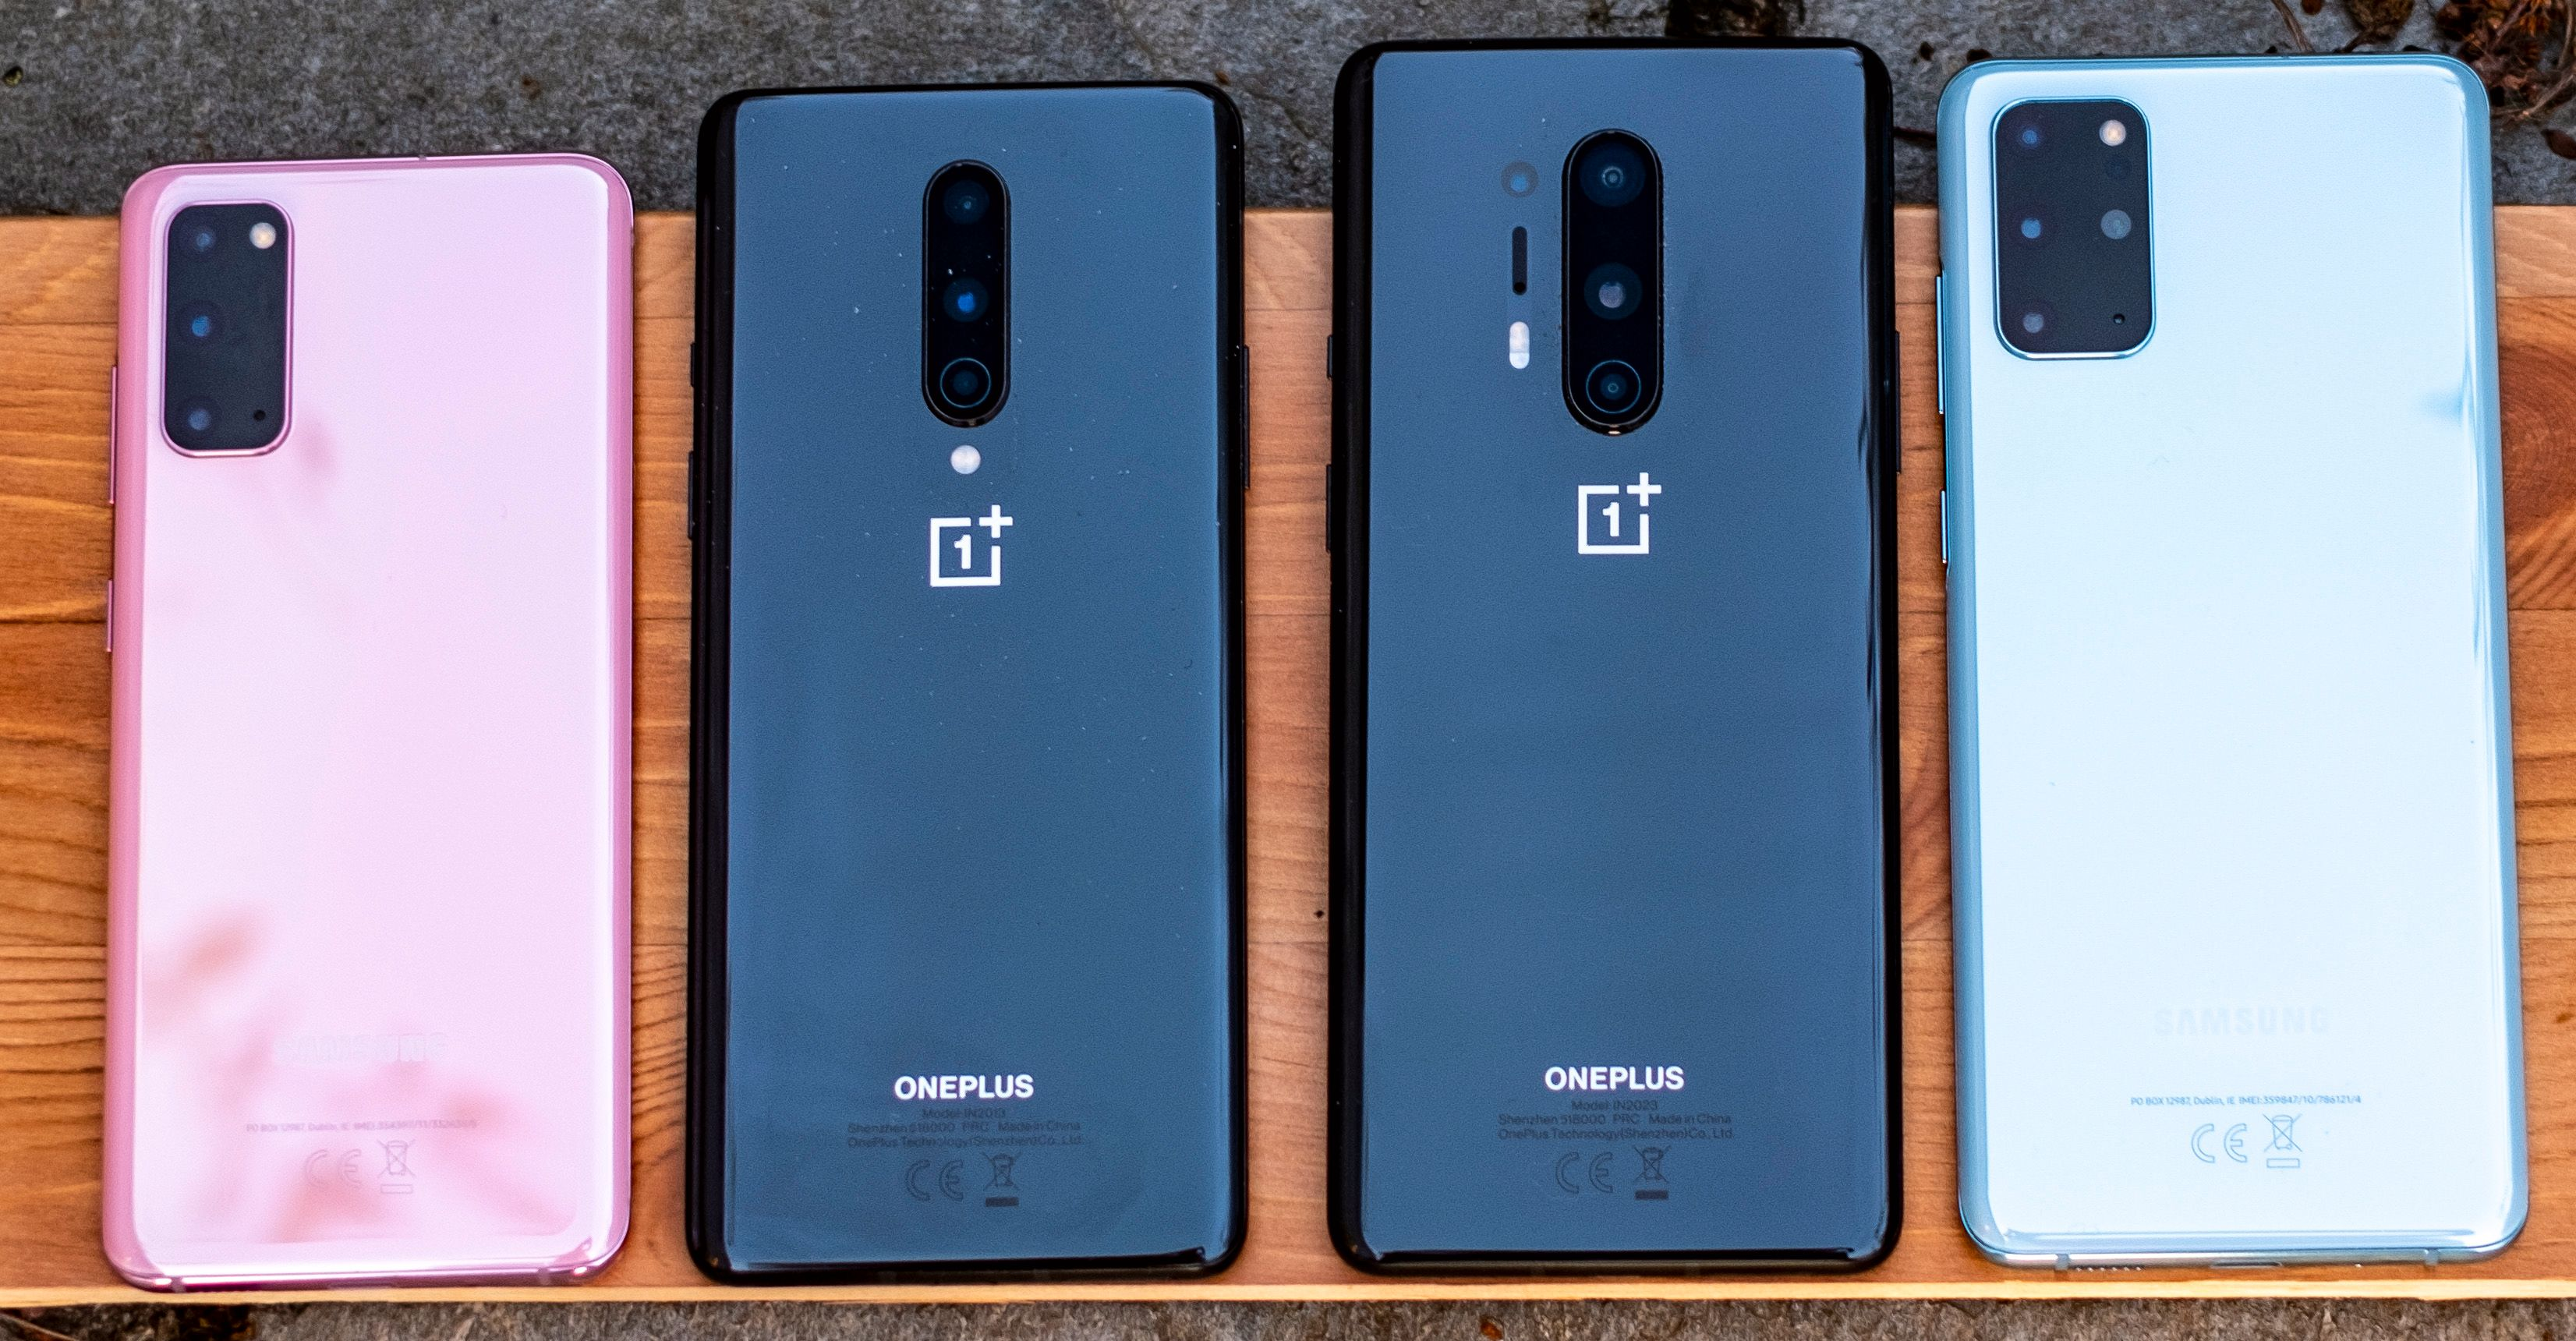 Fra venstre: Galaxy S20, OnePlus 8, OnePlus 8 Pro og Galaxy S20 Plus.